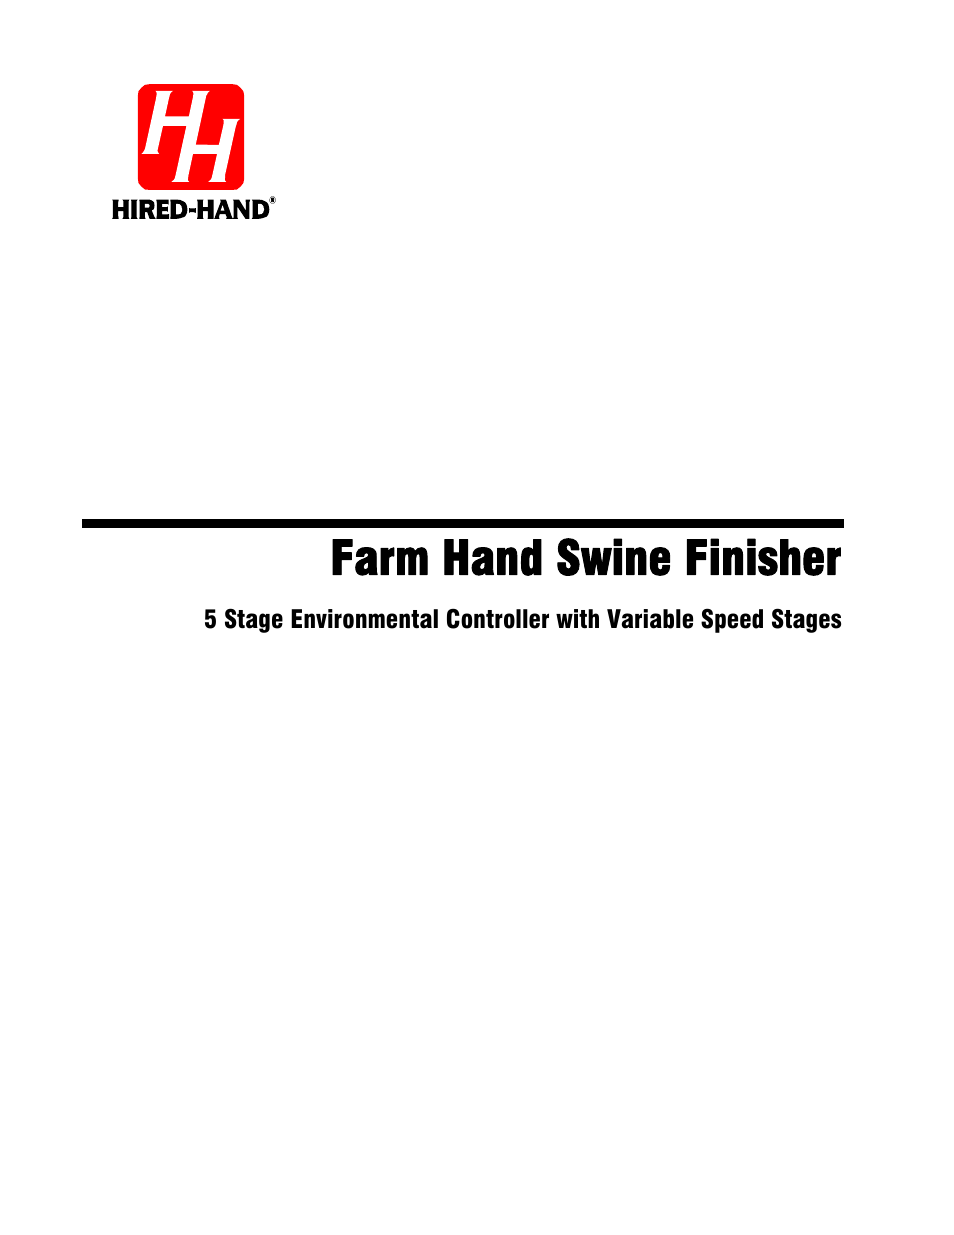 Hired-Hand Farm Hand Series: Swine Finisher User Manual